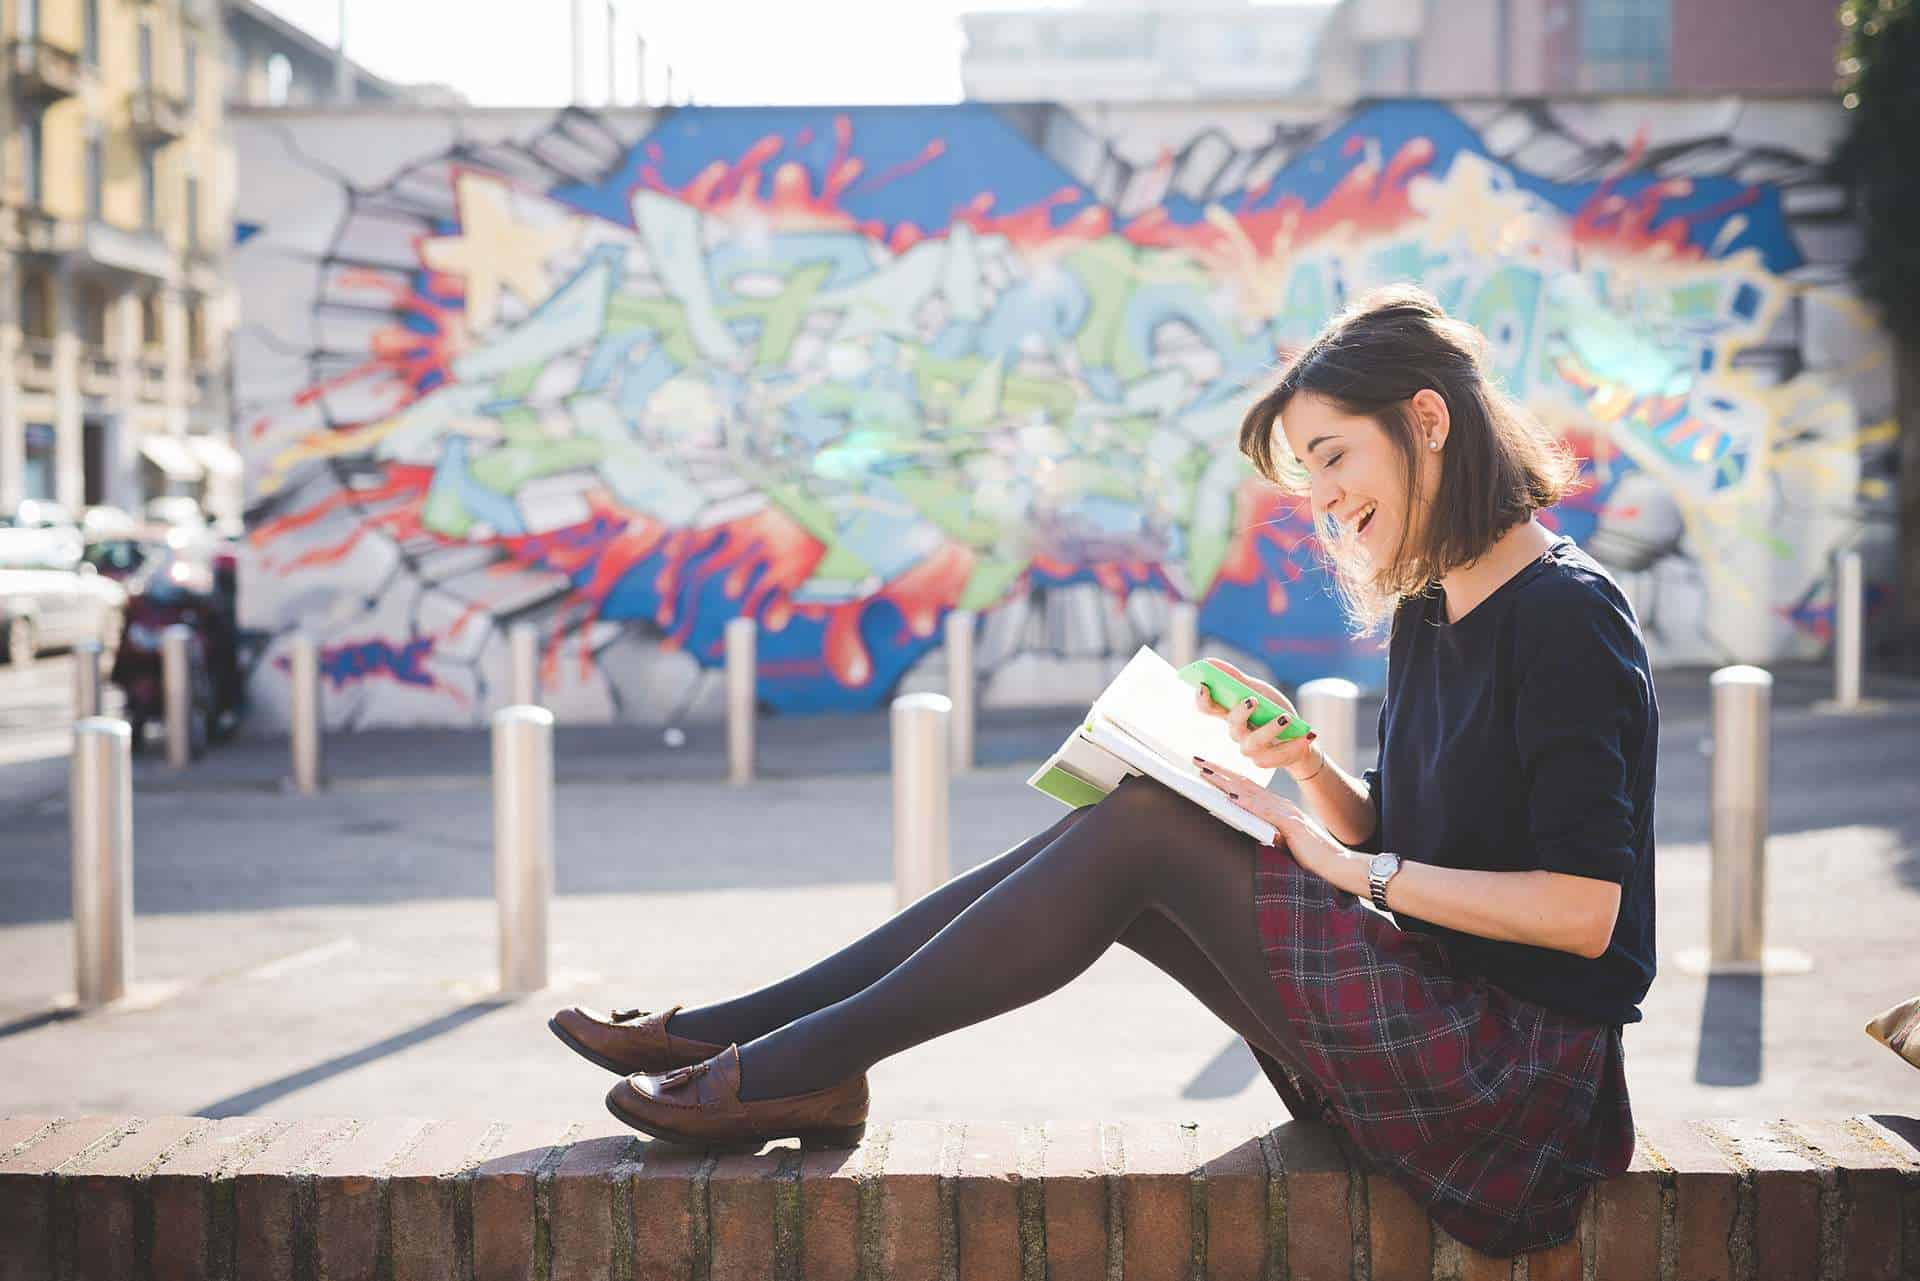 TOP MISTAKES TO AVOID WHEN STUDYING ABROAD